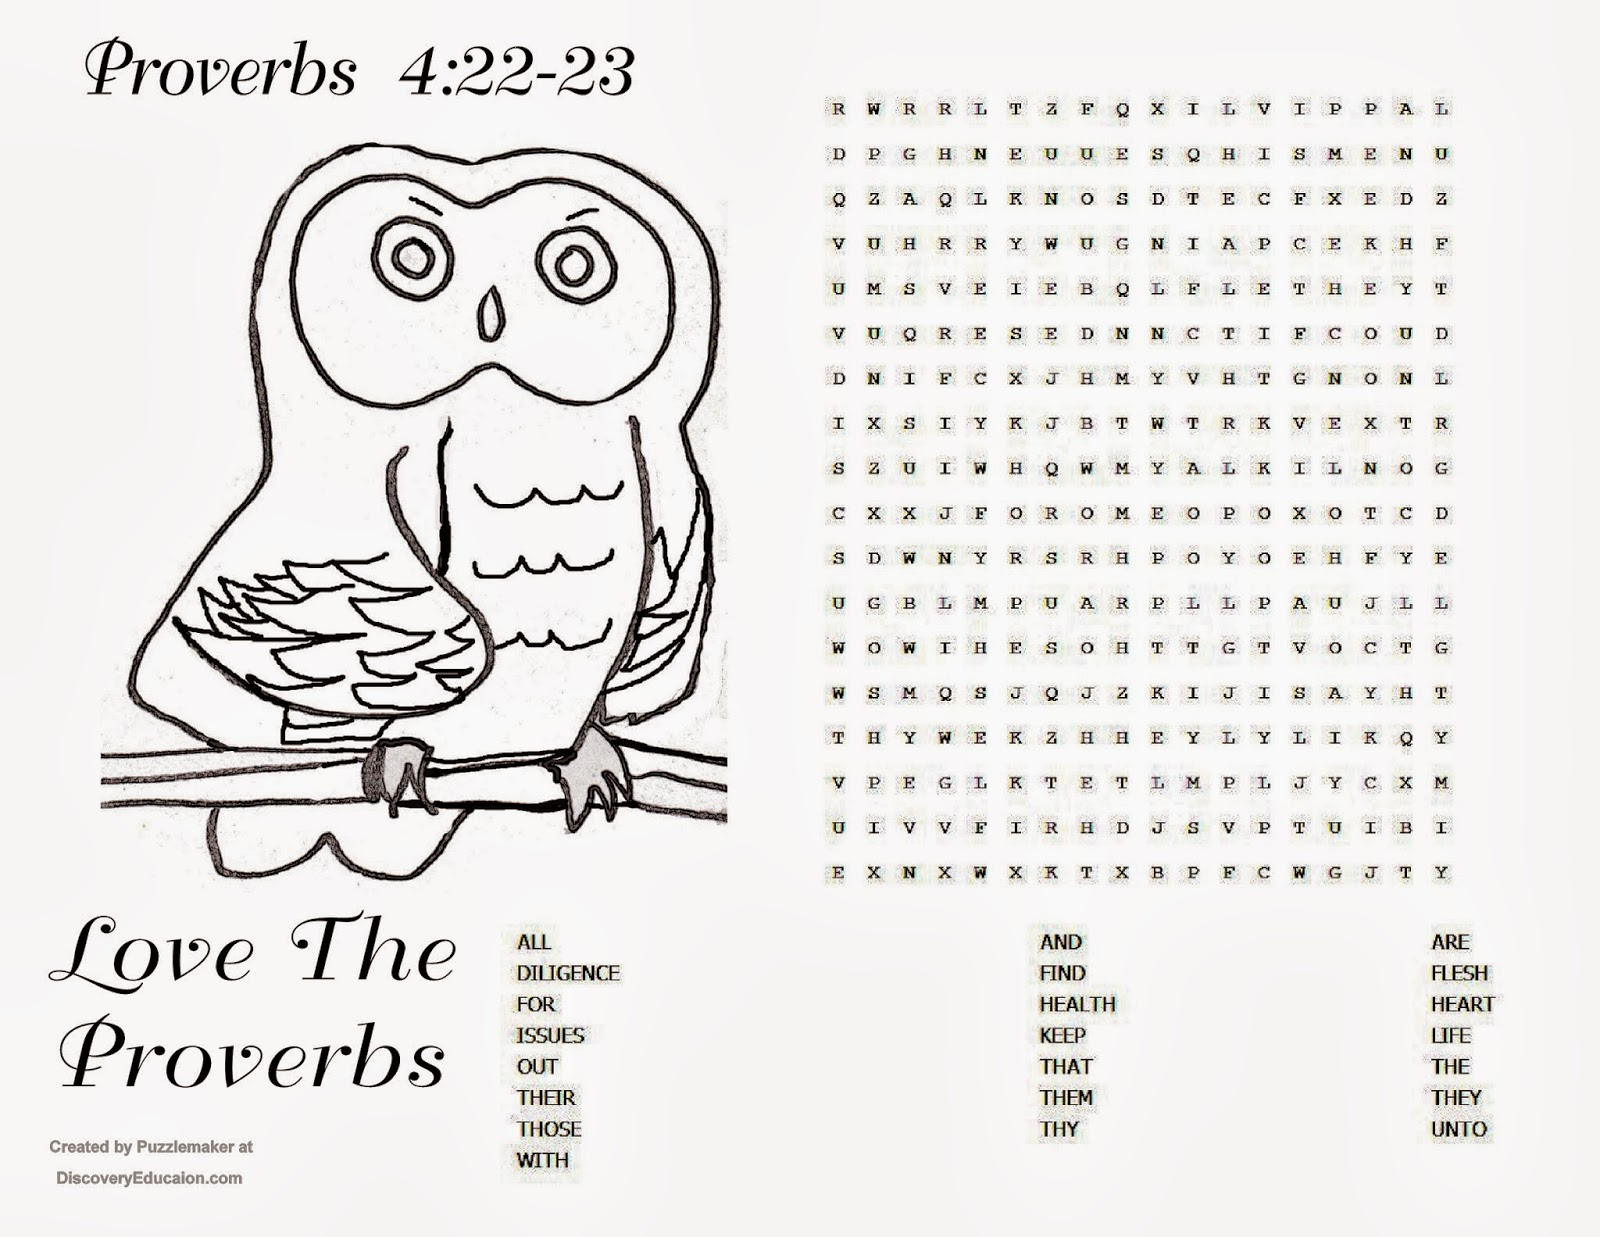 Childrens Gems In My Treasure Box: Proverbs 4:22-23 puzzle - Love The ...